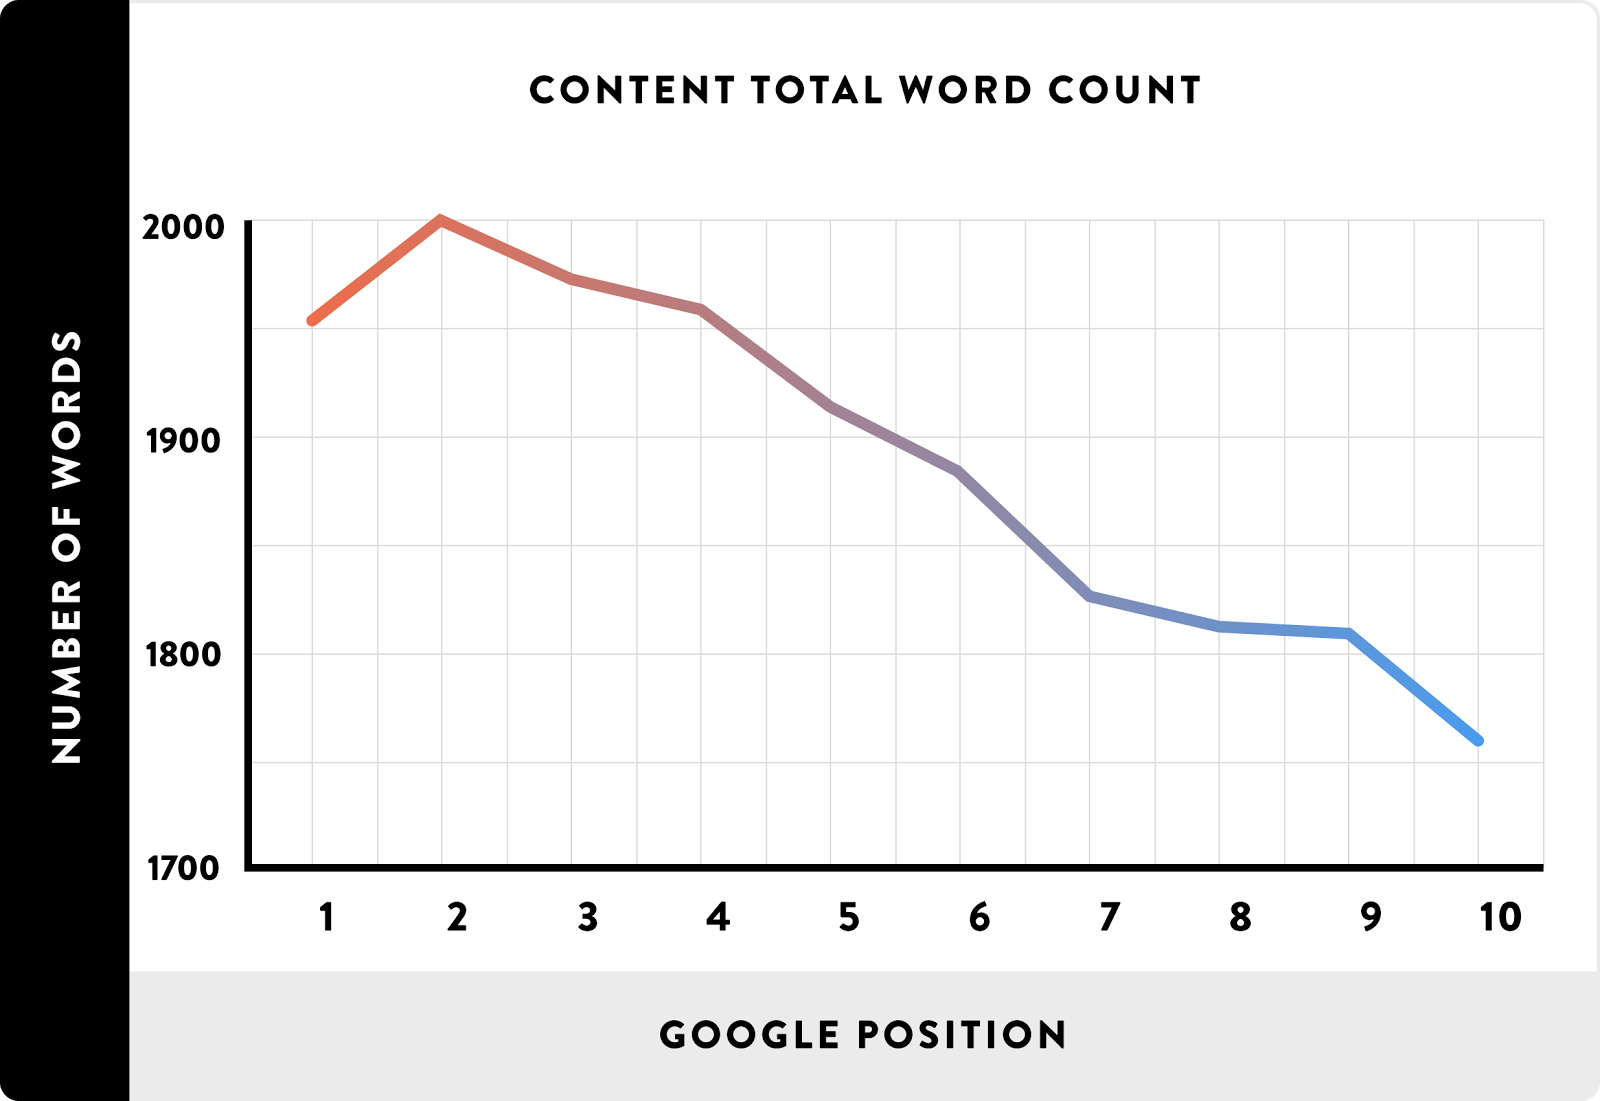 Graph showing relation between content total word count and google position